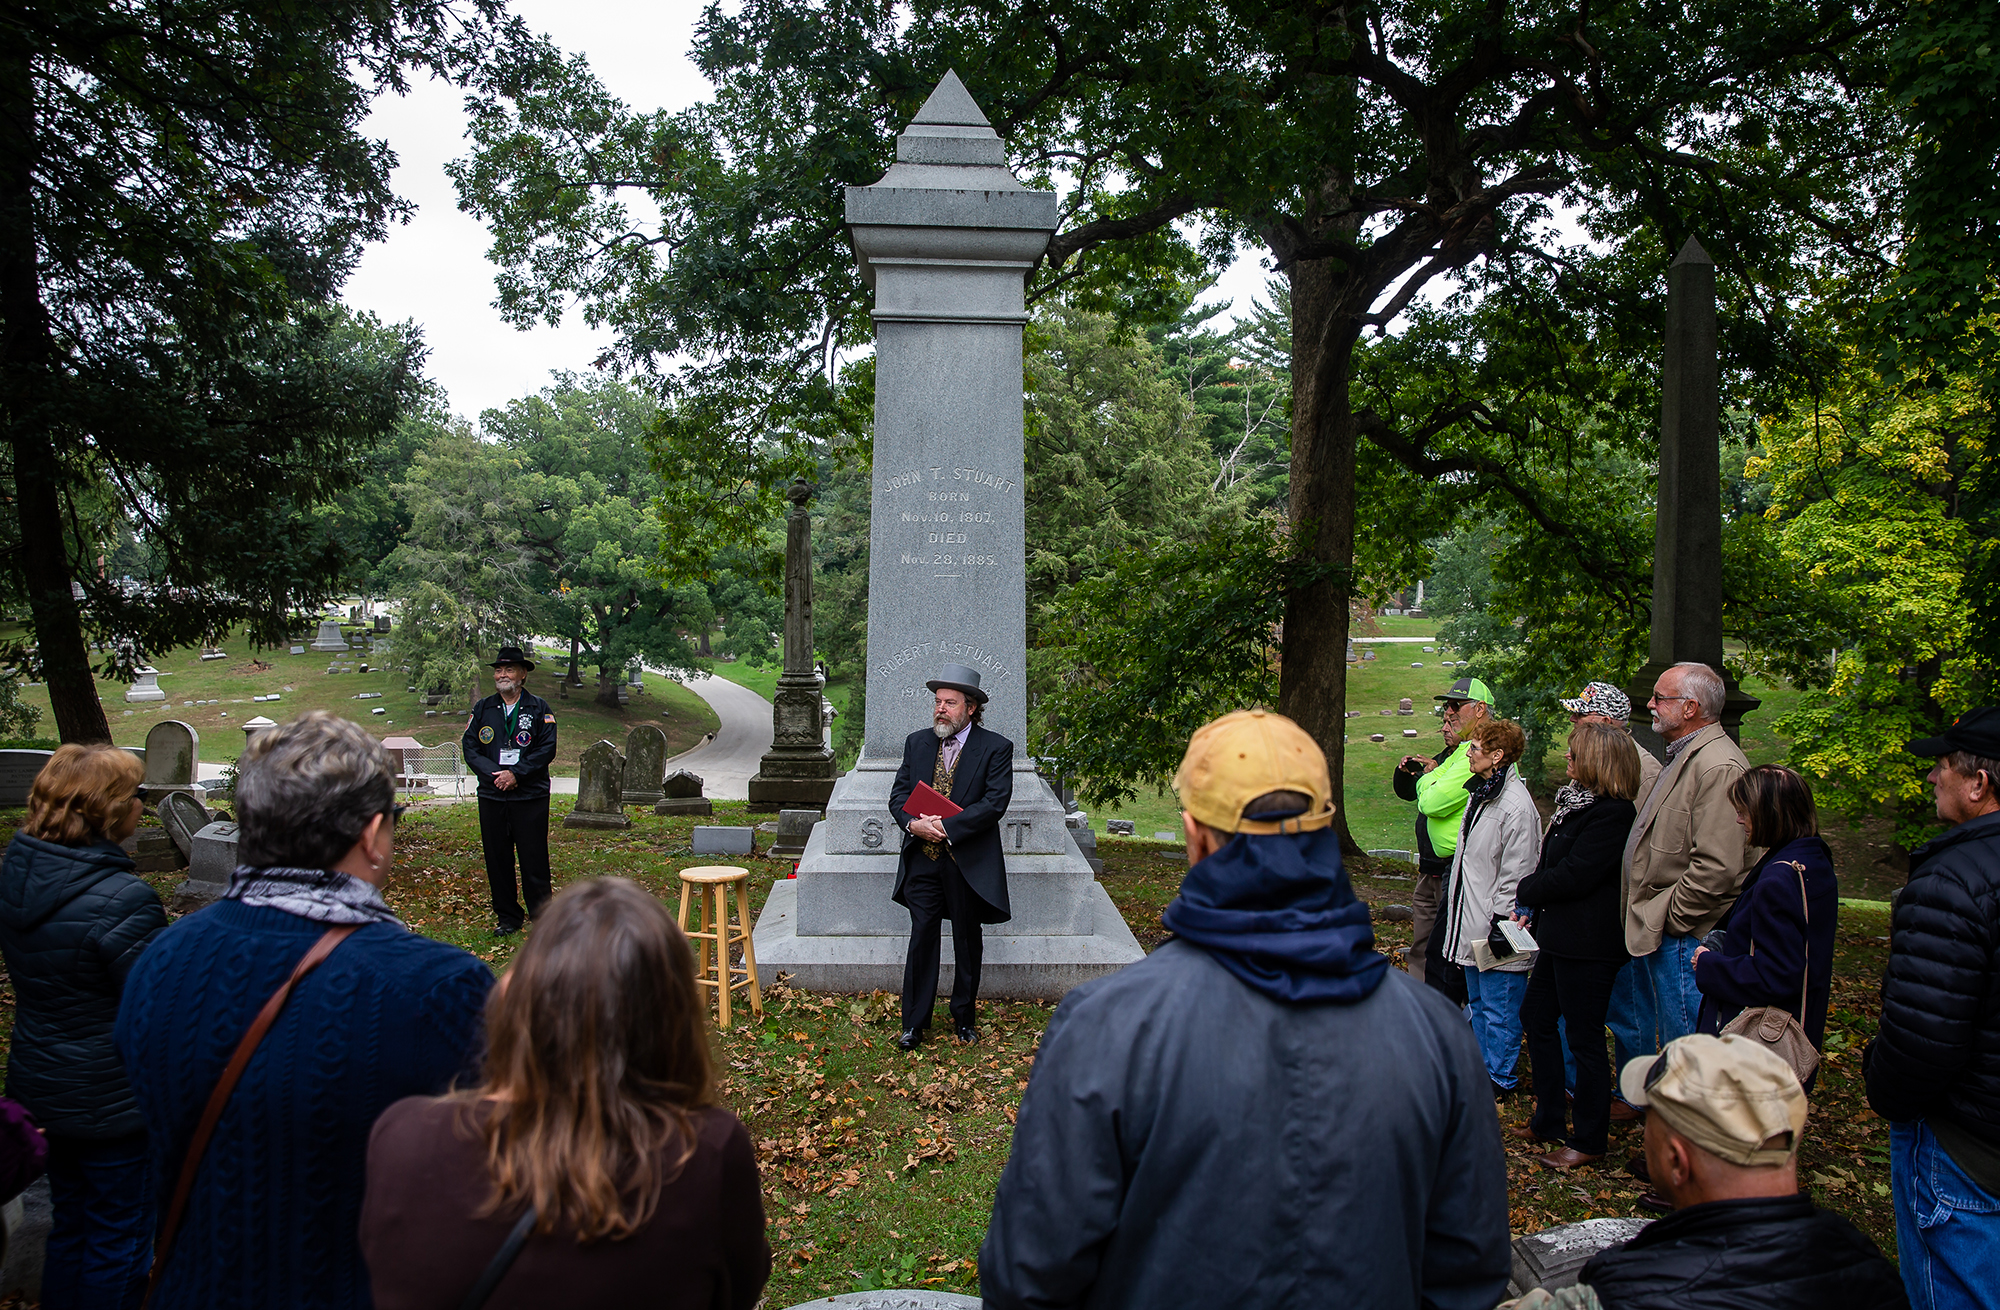 """Dennis Rendleman portrays John Todd Stuart, the cousin of Mary Todd Lincoln and Abraham Lincoln's law partner who came to Springfield in 1828, in front of the Stuart family marker during the Sangamon County Historical Society's """"Echos of Yesteryear: A Walk through Oak Ridge Cemetery"""" at the cemetery, Sunday, Oct. 14, 2018, in Springfield, Ill. This year's walk celebrated the Illinois Bicentennial with actors and actresses dressed in period costumes portraying individuals who had arrived in Springfield near the time of Illinois received statehood.[Justin L. Fowler/The State Journal-Register]"""